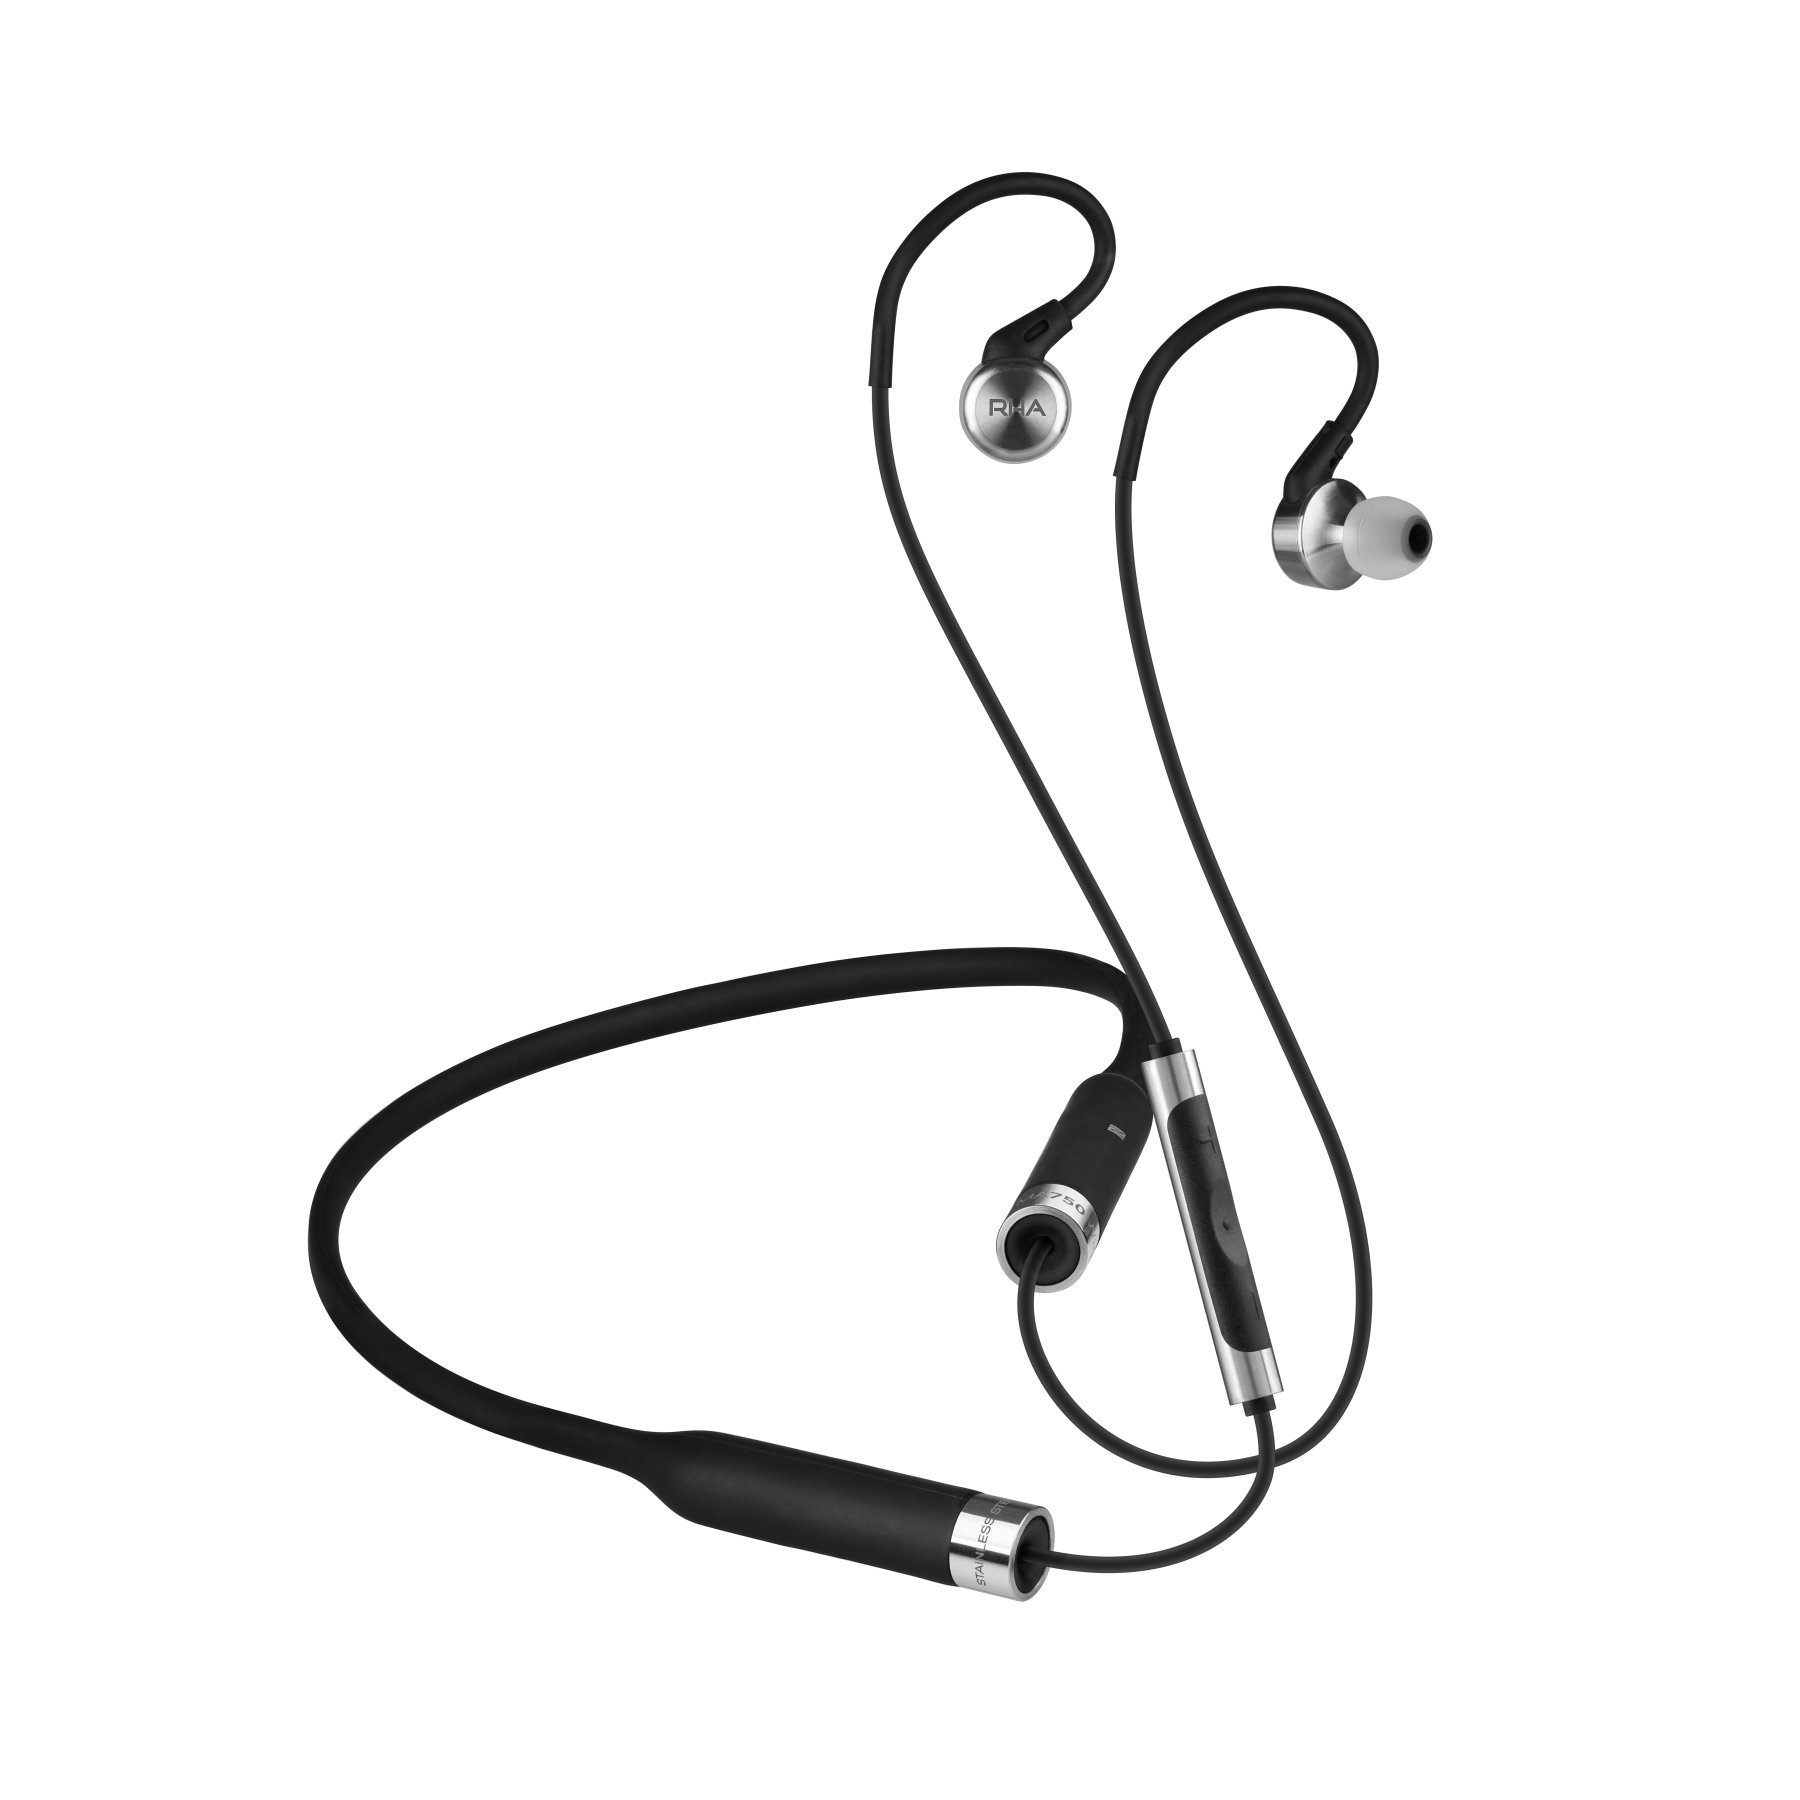 RHA MA750 Wireless: Noise Isolating Bluetooth In-Ear Headphones with Universal Remote & Microphone 12 Hour Battery Life